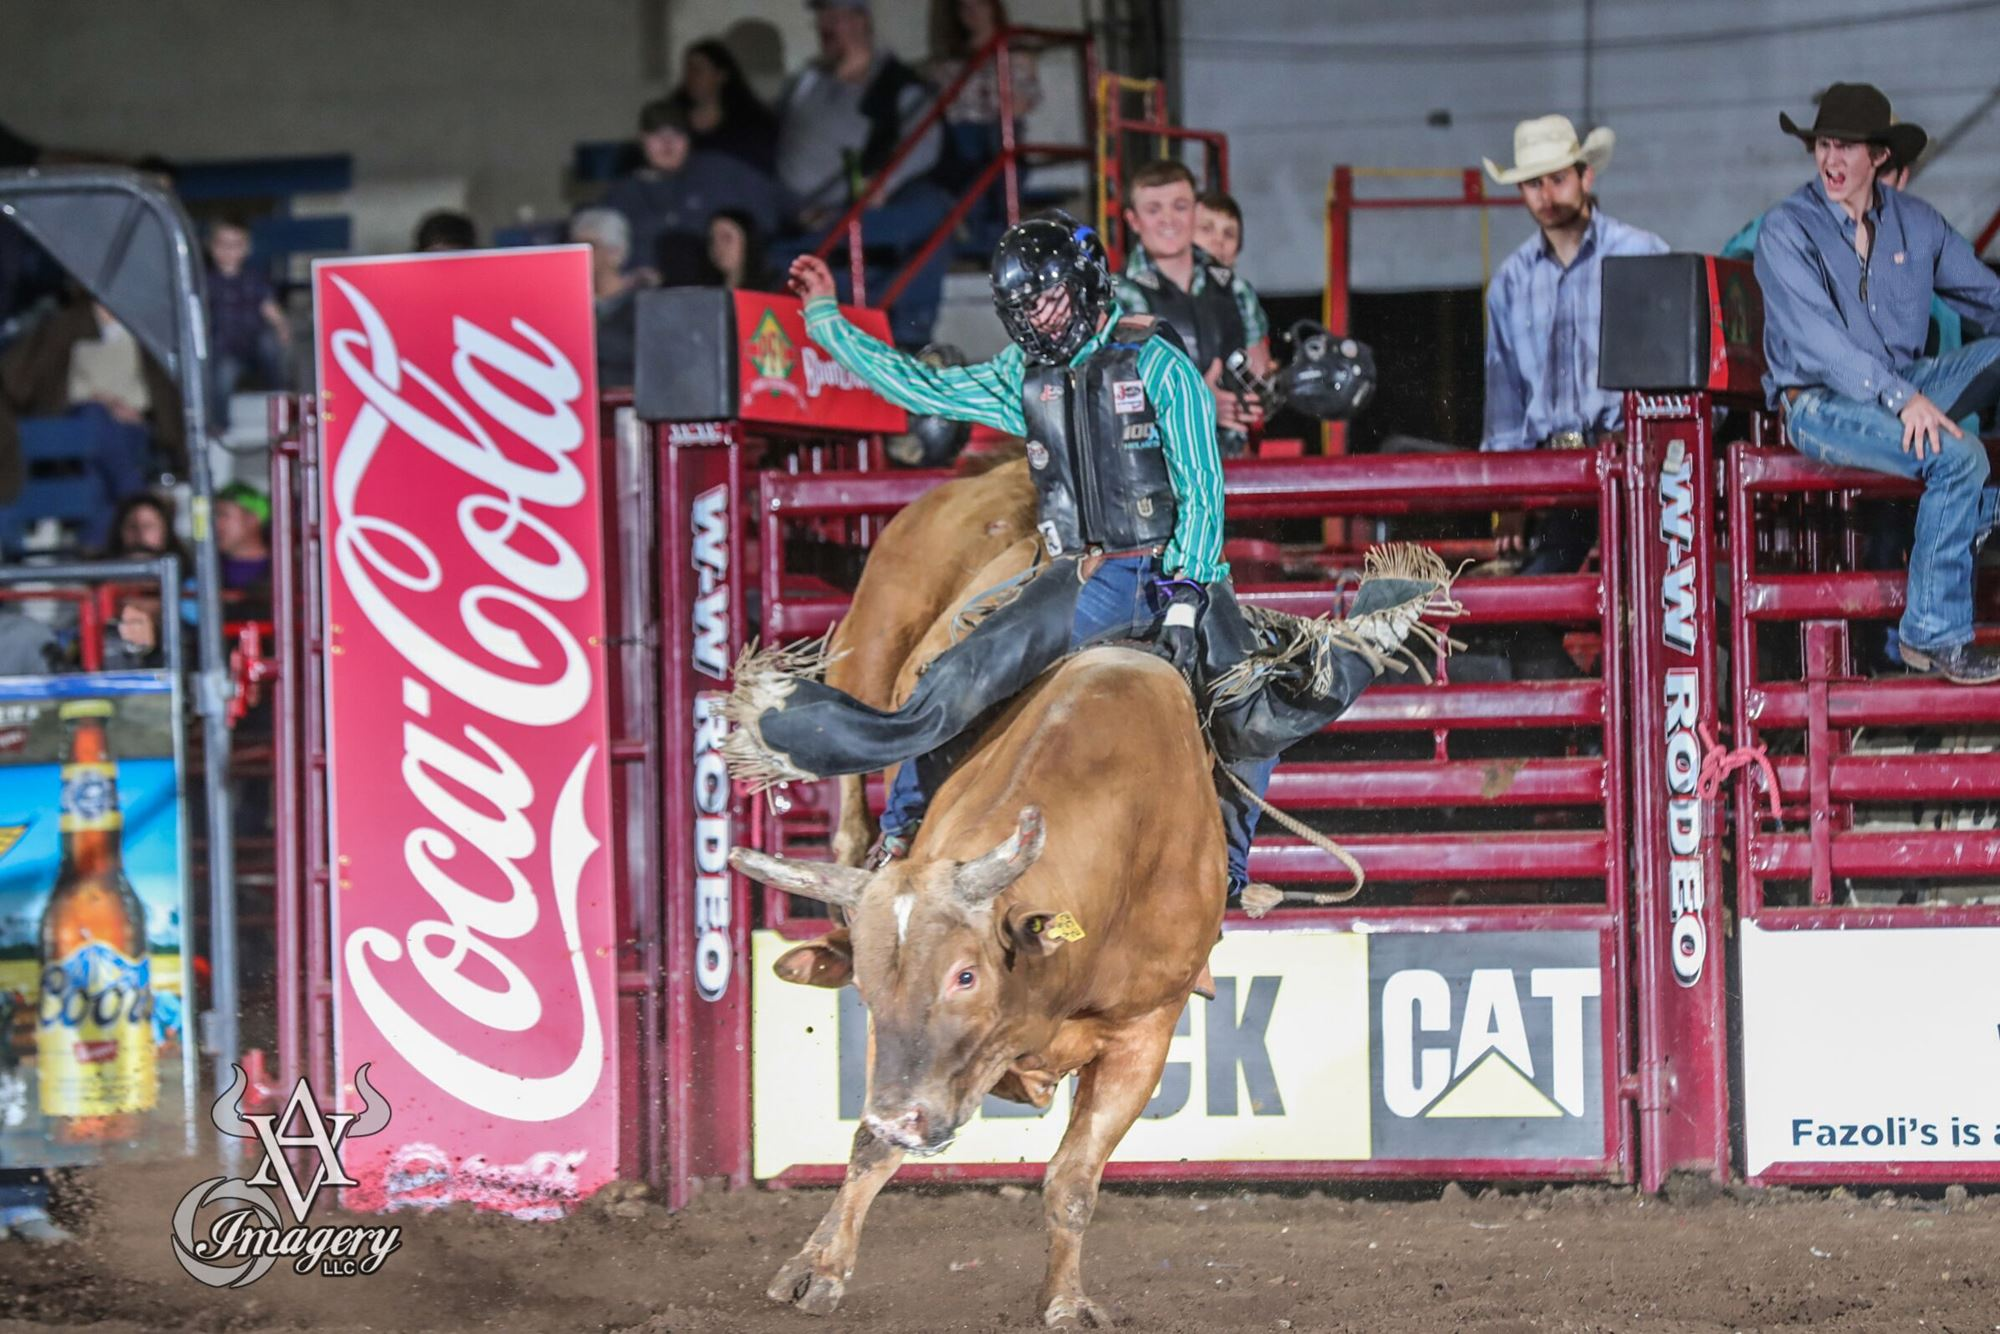 Hardee's Bulls and Barrels (Friday) | August 2nd, 2019